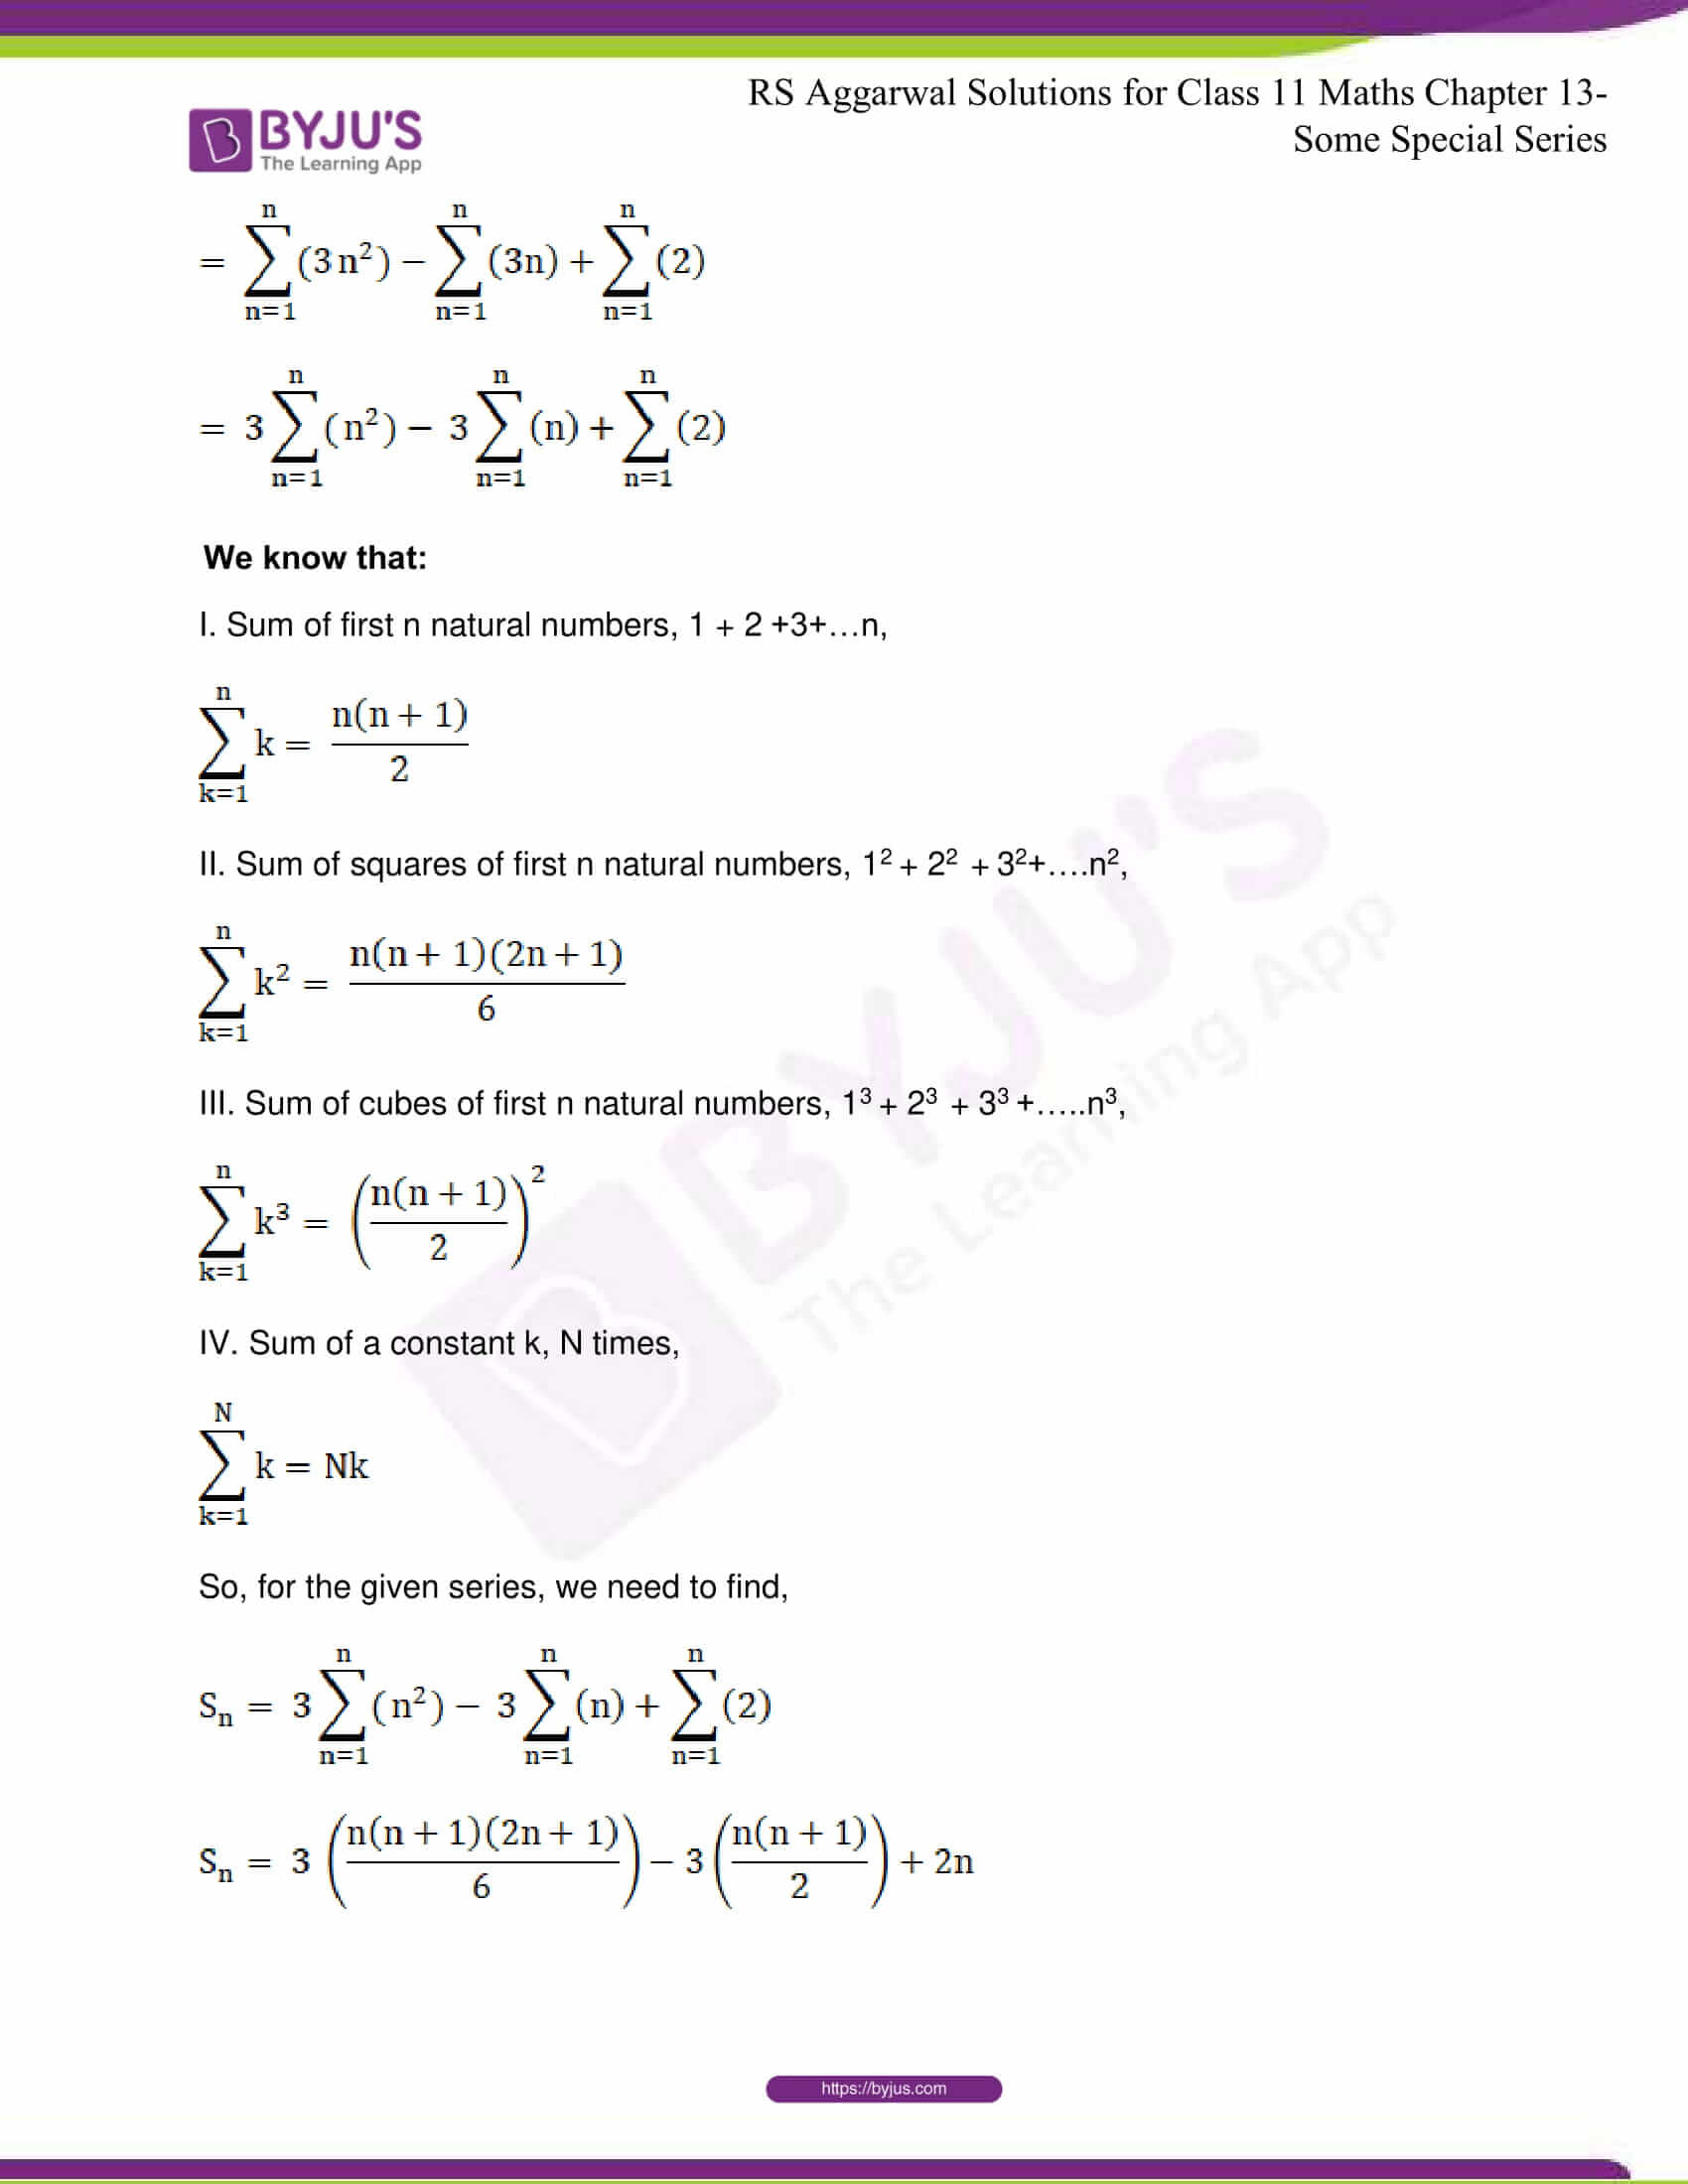 rsaggarwal solutions class 11 maths chapter 13 07